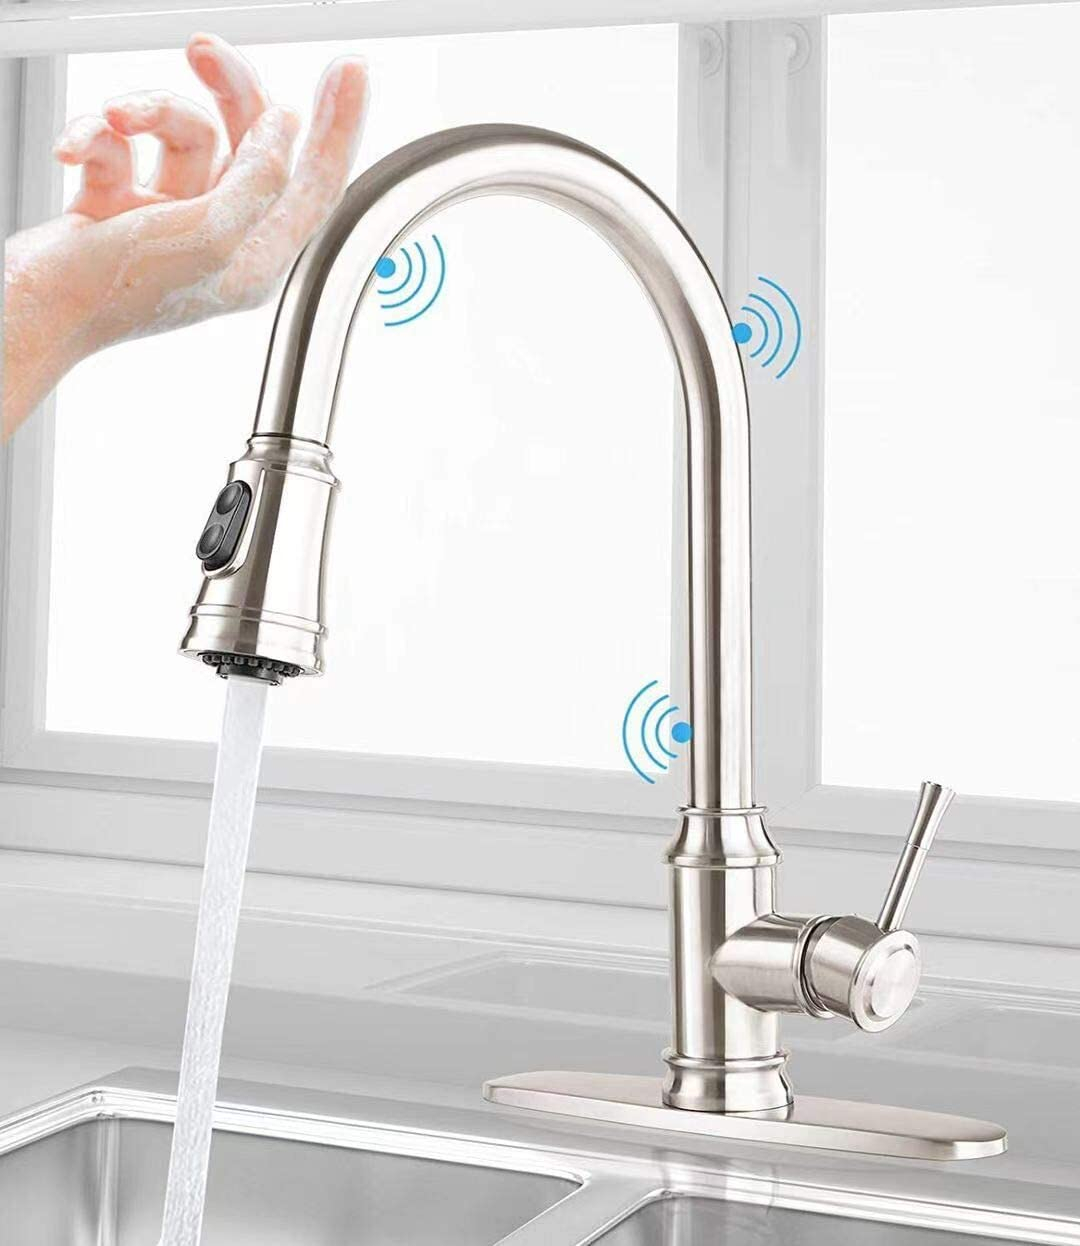 CWM Touch Kitchen Faucets with Pull Down Sprayer Stainless Steel Kitchen Sink Faucet with Pull Out Sprayer Single Handle Touch Activated Faucet with Two Water Modes 16.5 inch with Deck Plate…